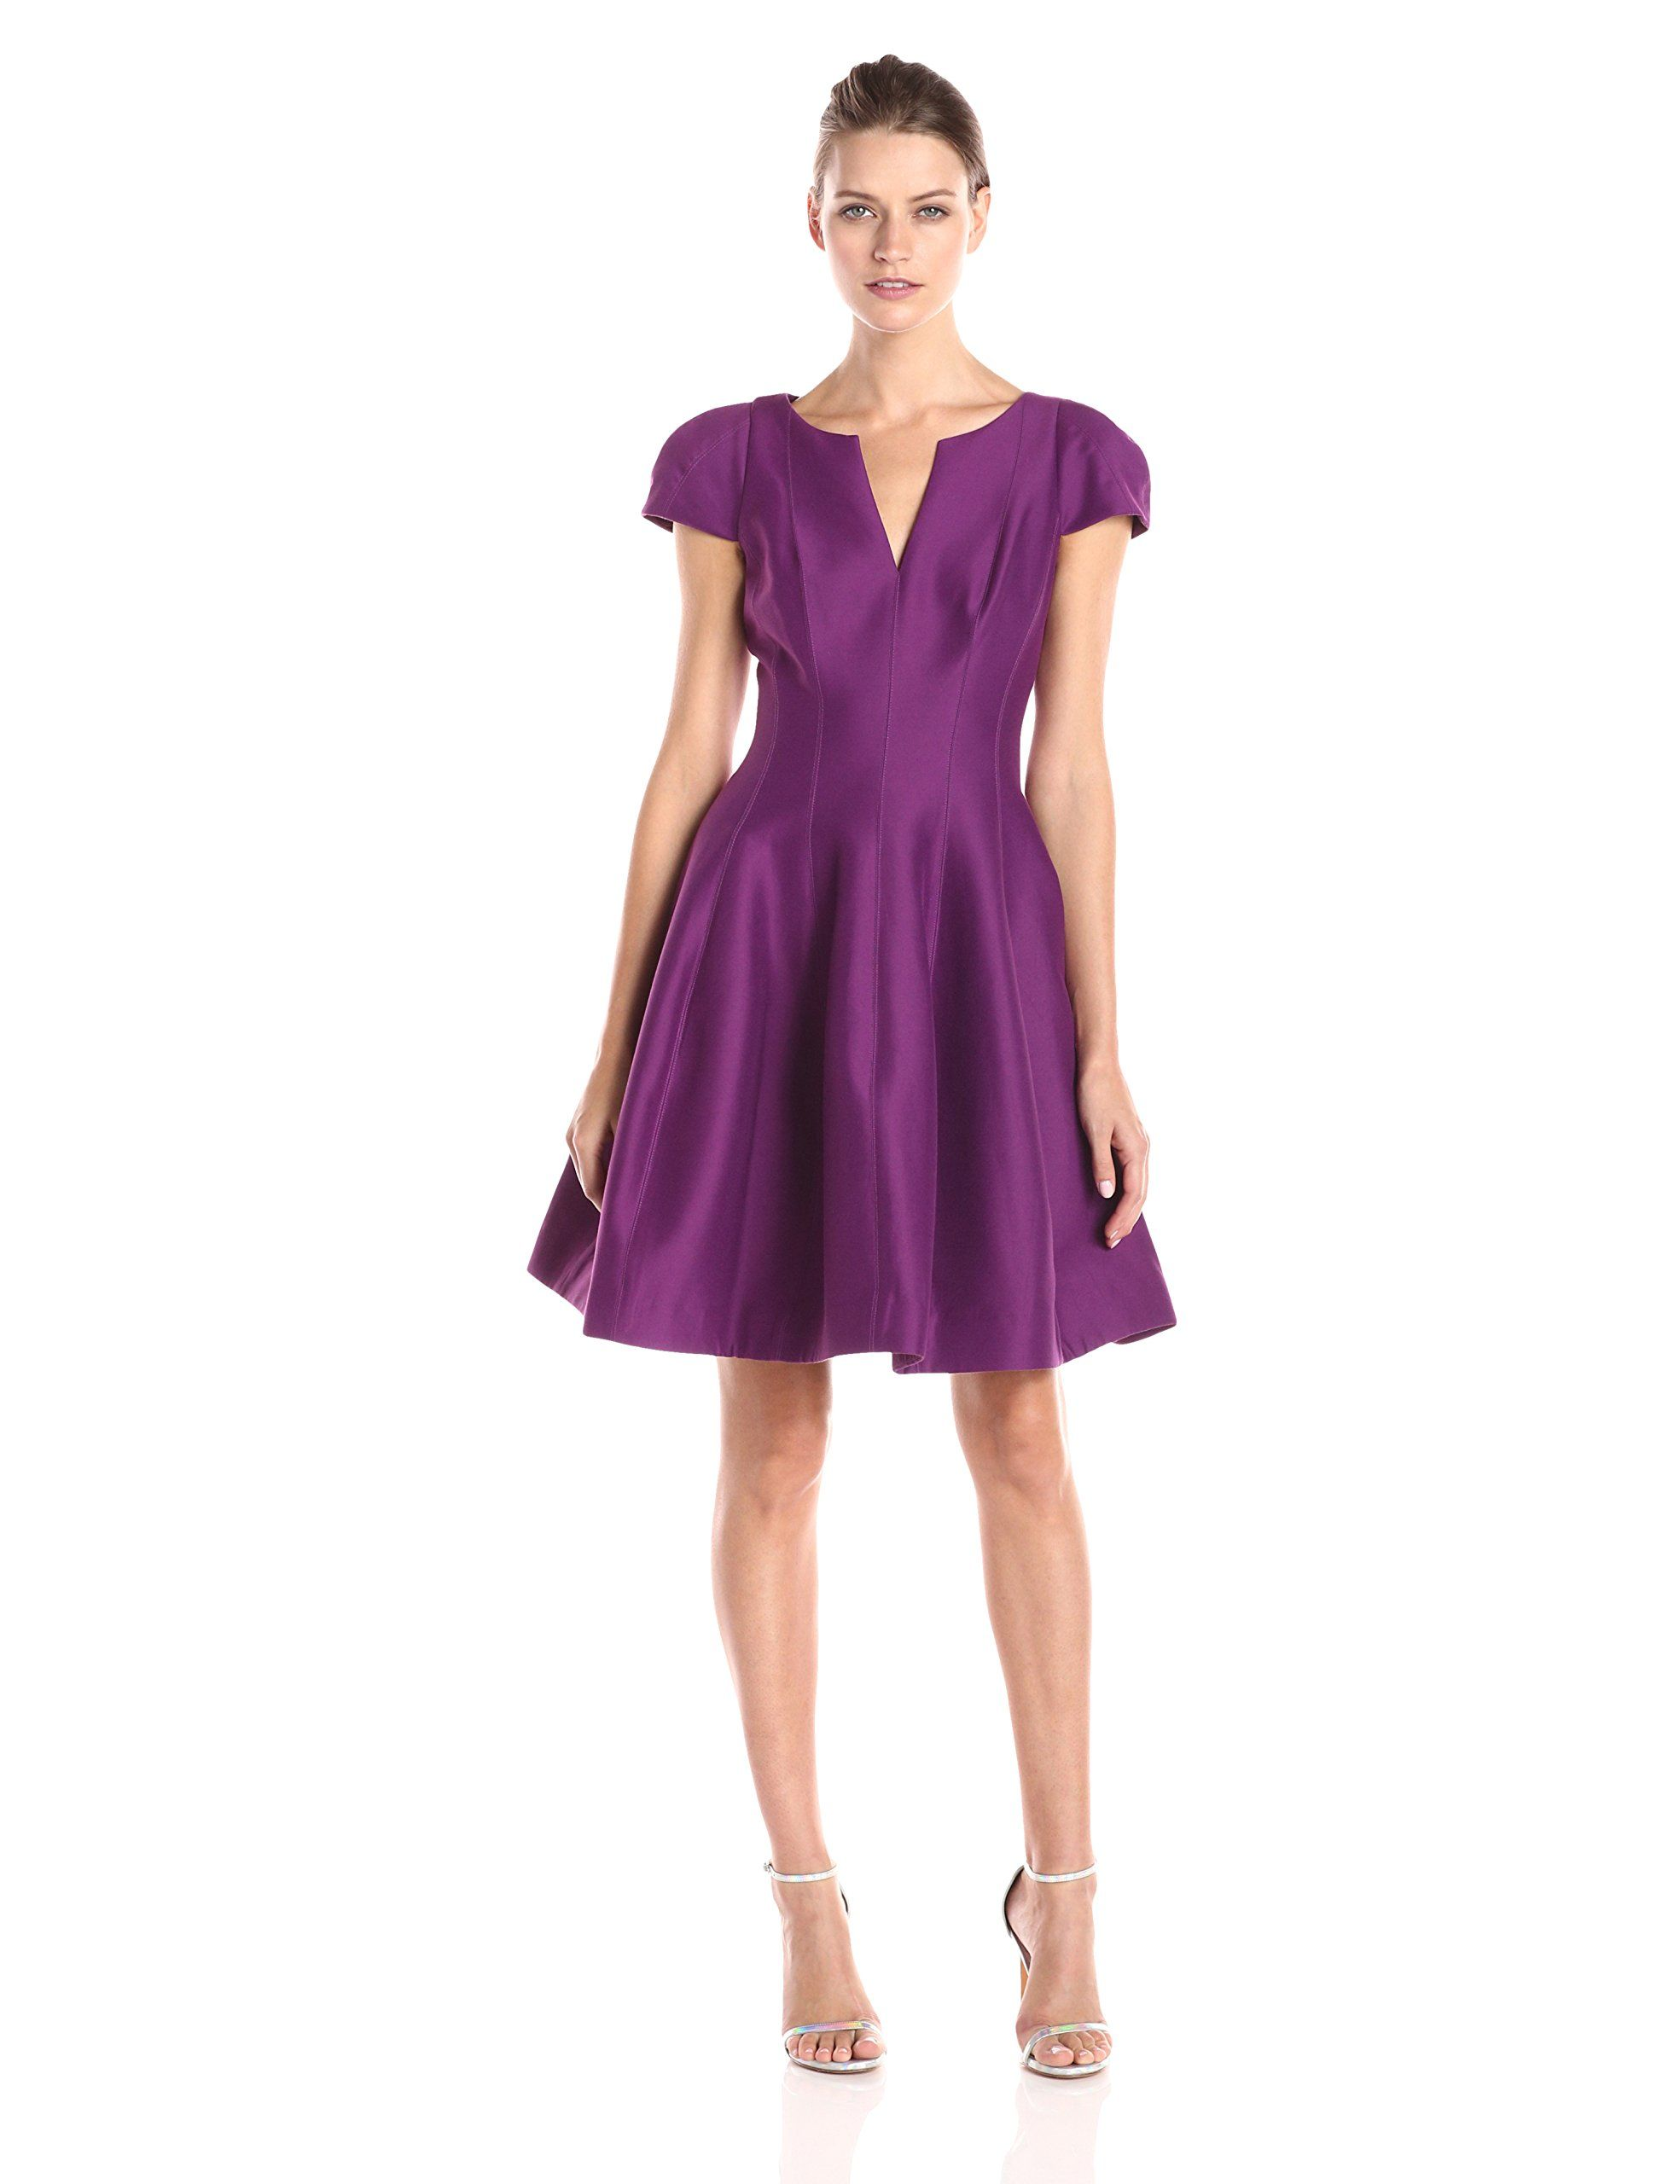 HALSTON HERITAGE Women's Cap Sleeve Cocktail Dress, Magenta, 4. Fit-and-flare dress featuring princess seaming, split V-neckline, and structured cap sleeves. Concealed center back zipper.